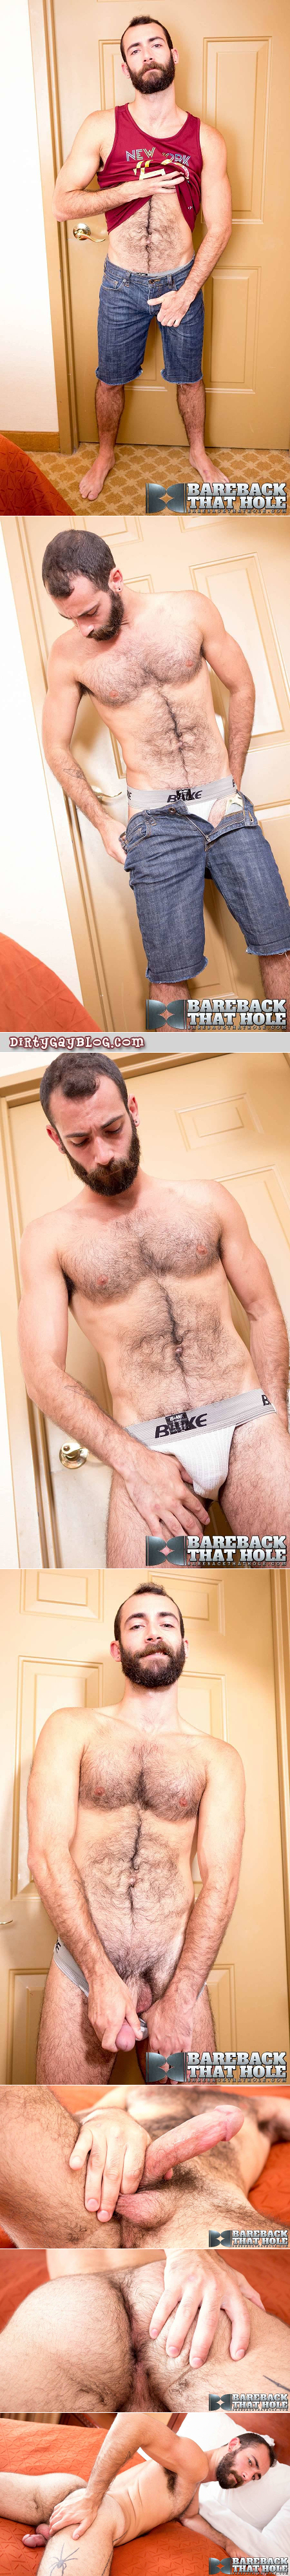 Sexy, hairy otter stripping off his clothes in a hotel room.